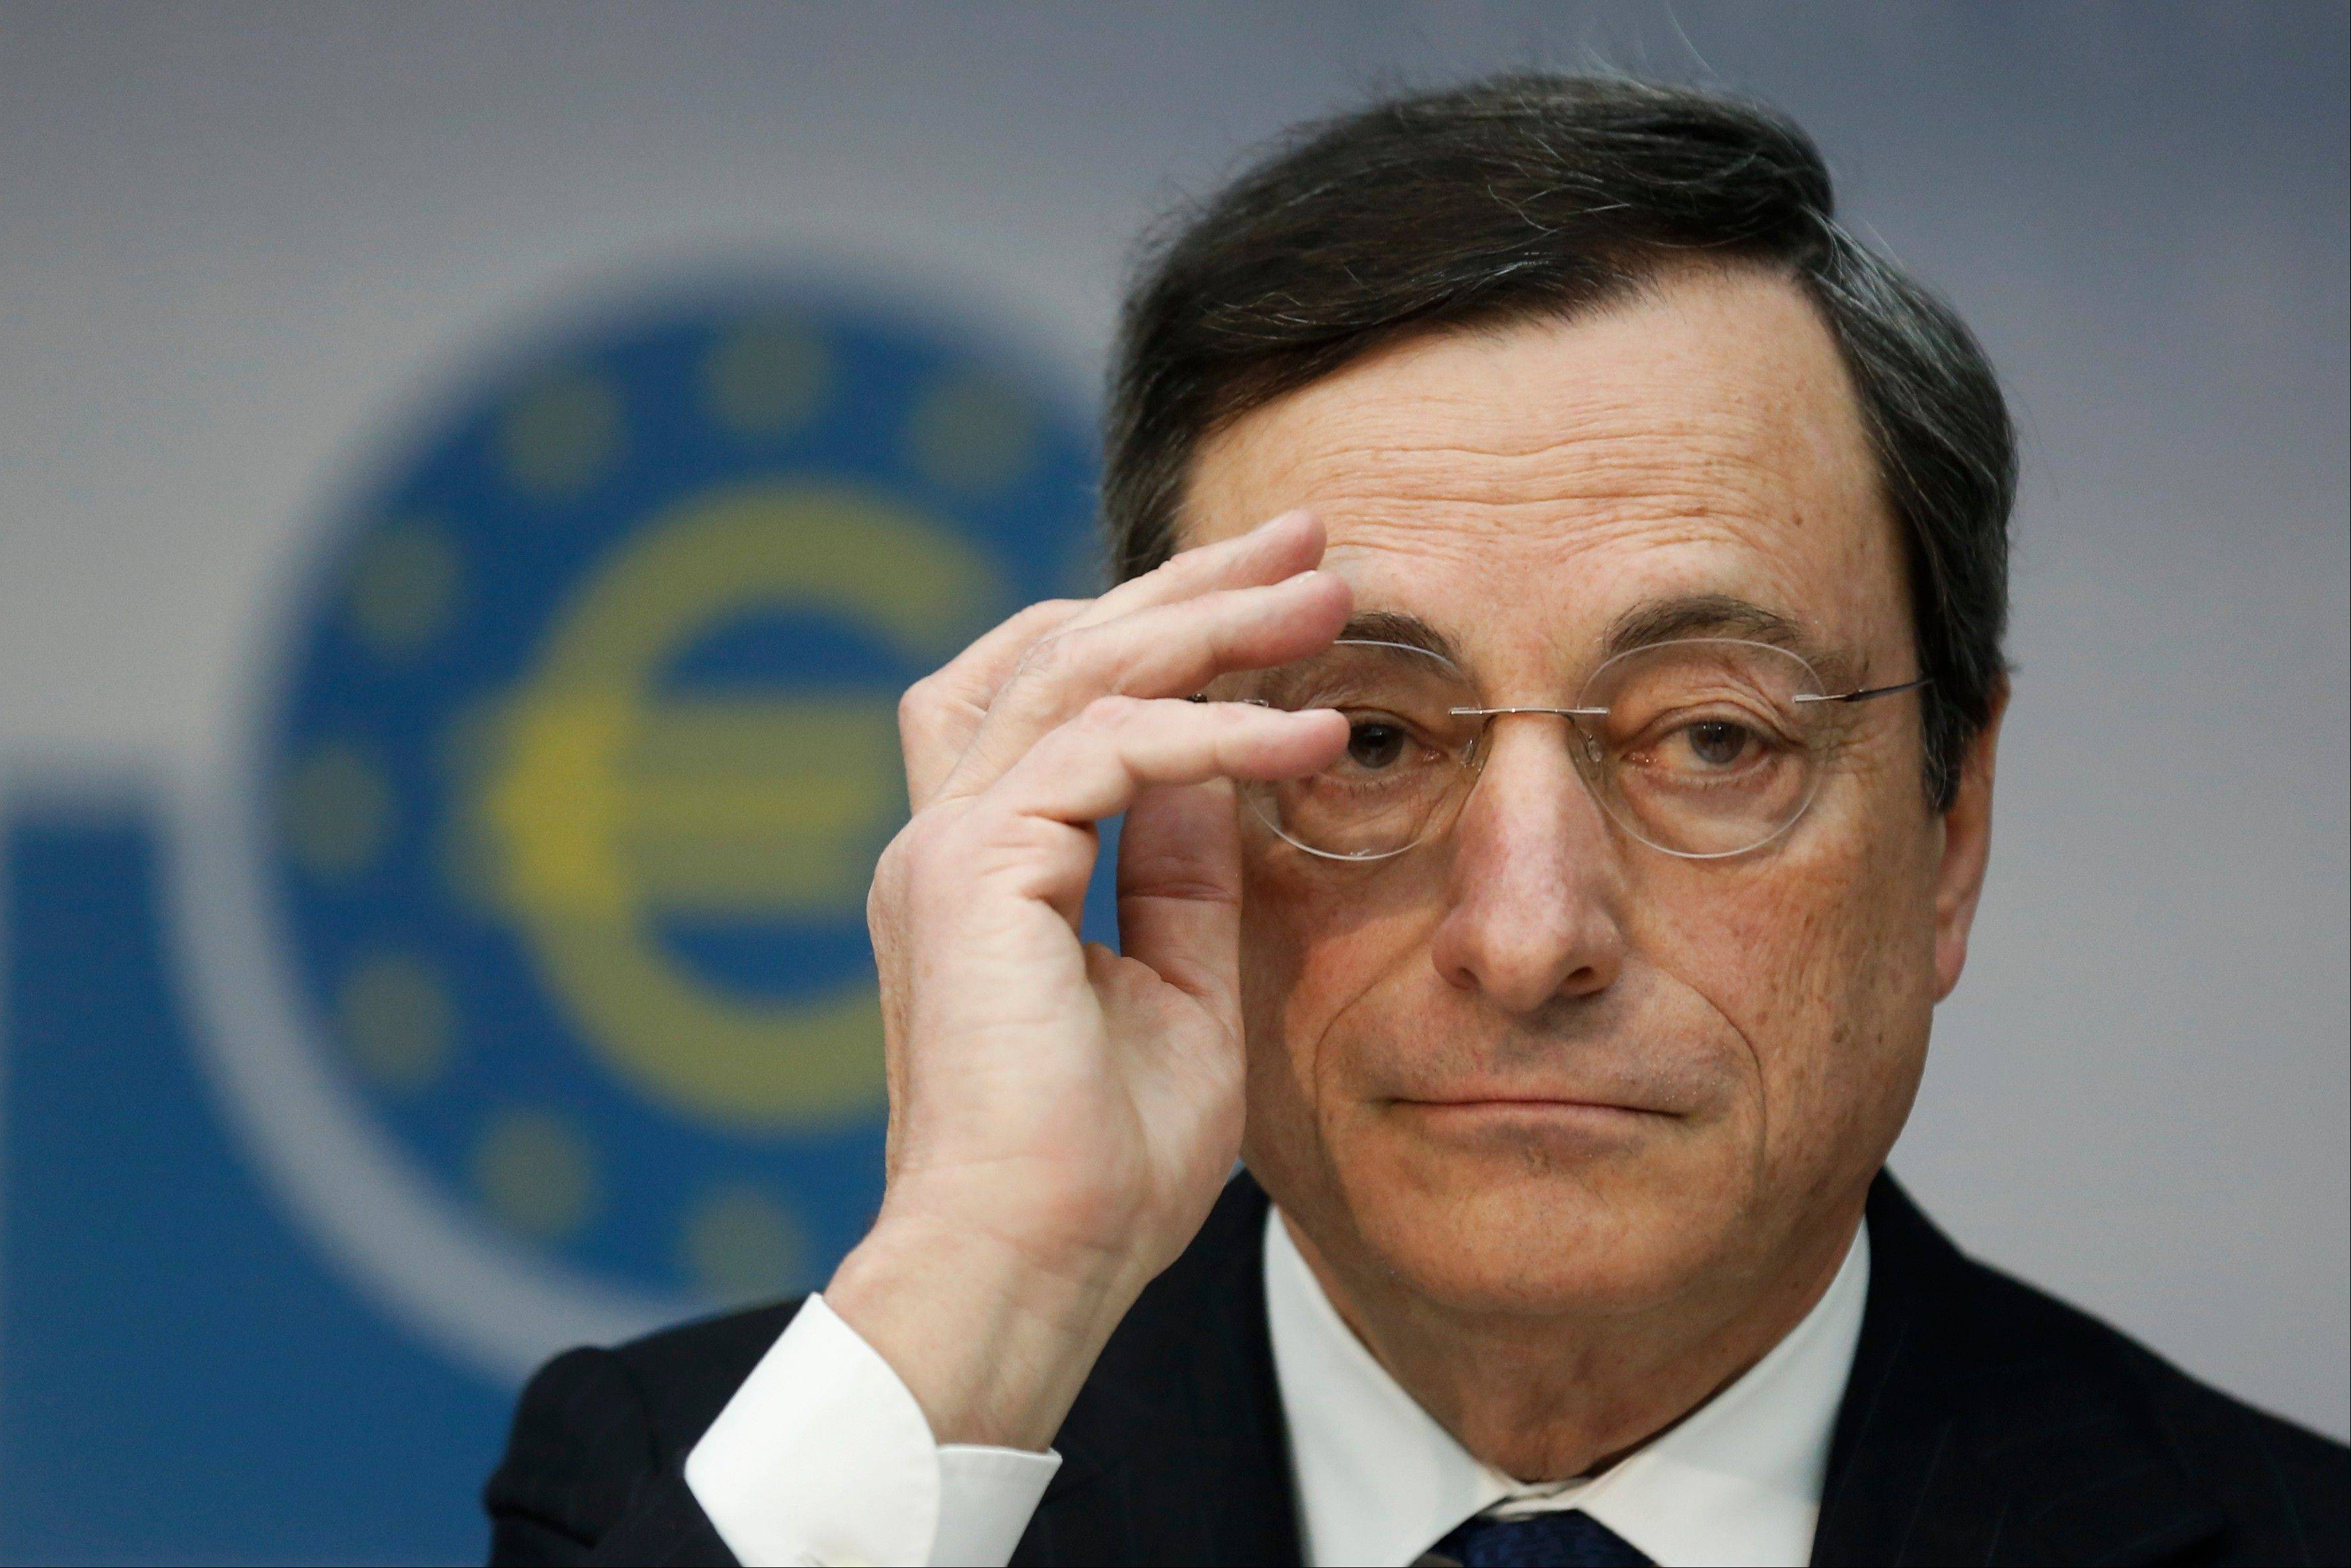 The European Central Bank left rates unchanged at its meeting Thursday, and Mario Draghi gave little sign the bank was willing to add more stimulus. He said the bank had already done much to lower borrowing costs in heavily indebted countries that are struggling to grow.